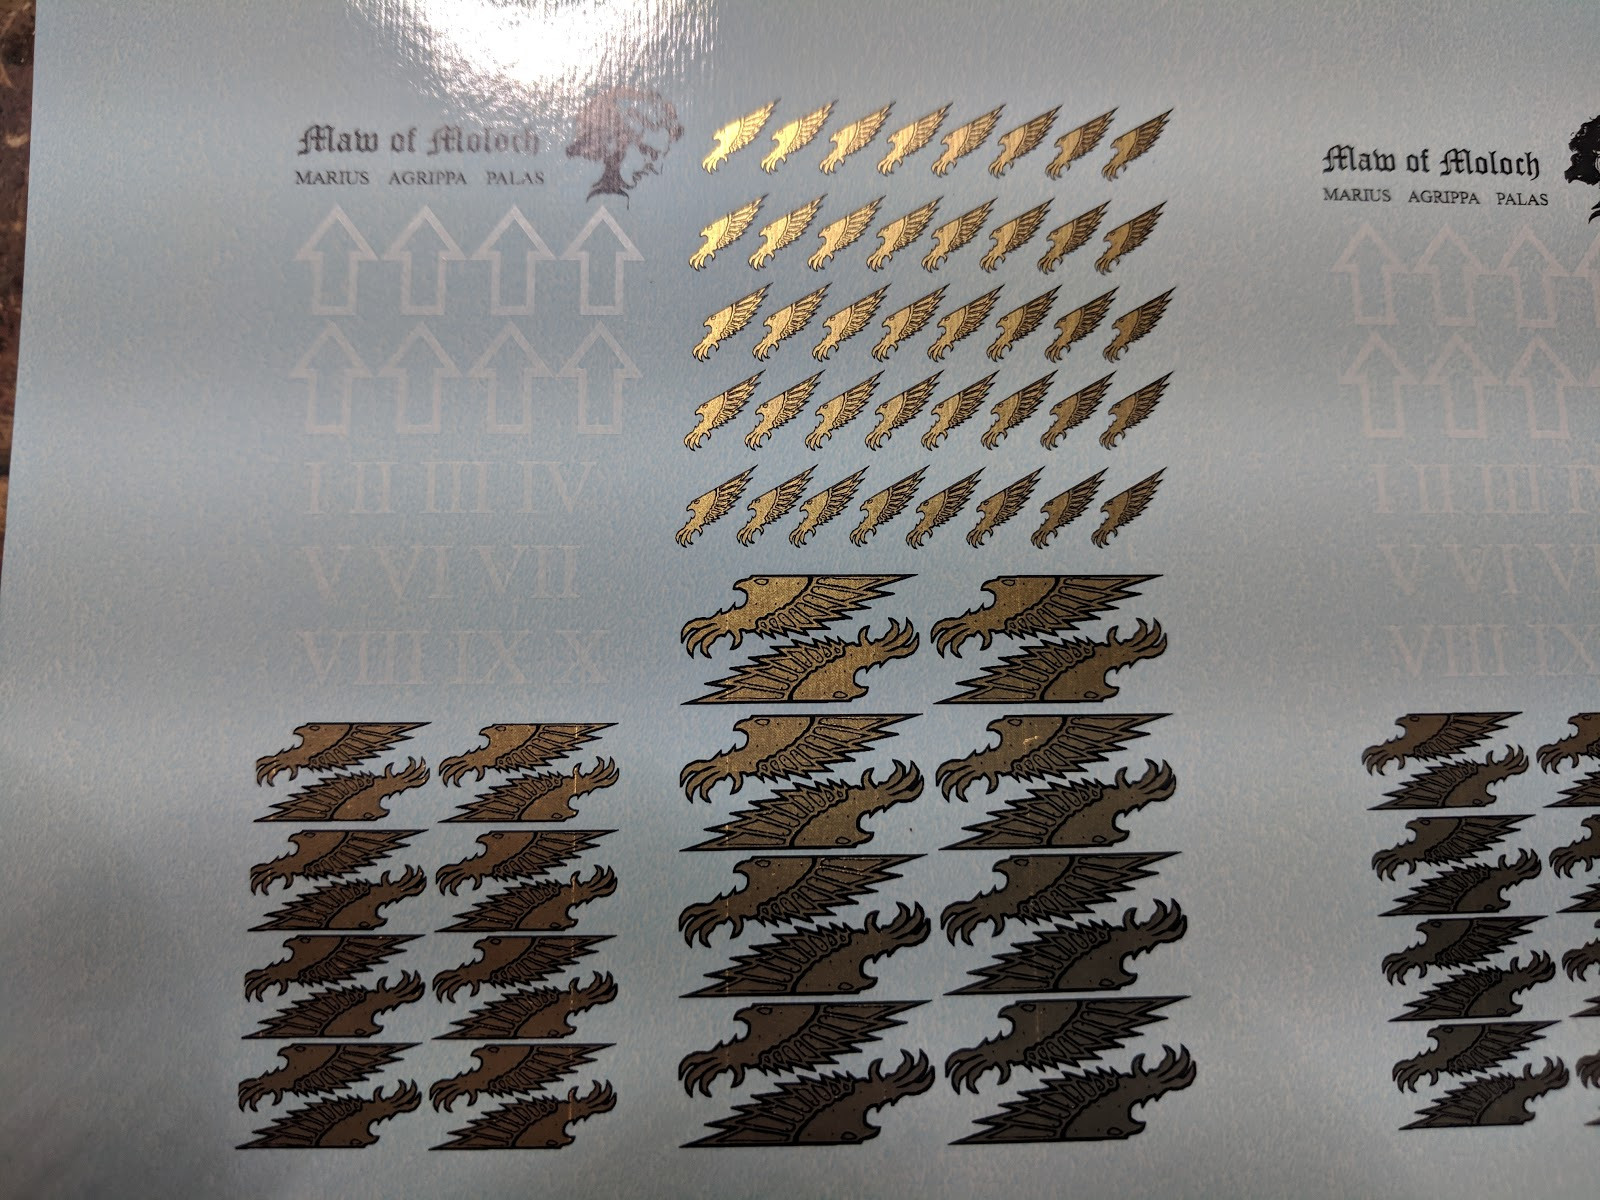 79f91e1df I just received my order of custom waterslide transfers and they turned out  awesome. The original Forge World variety that I first purchased when I  started ...